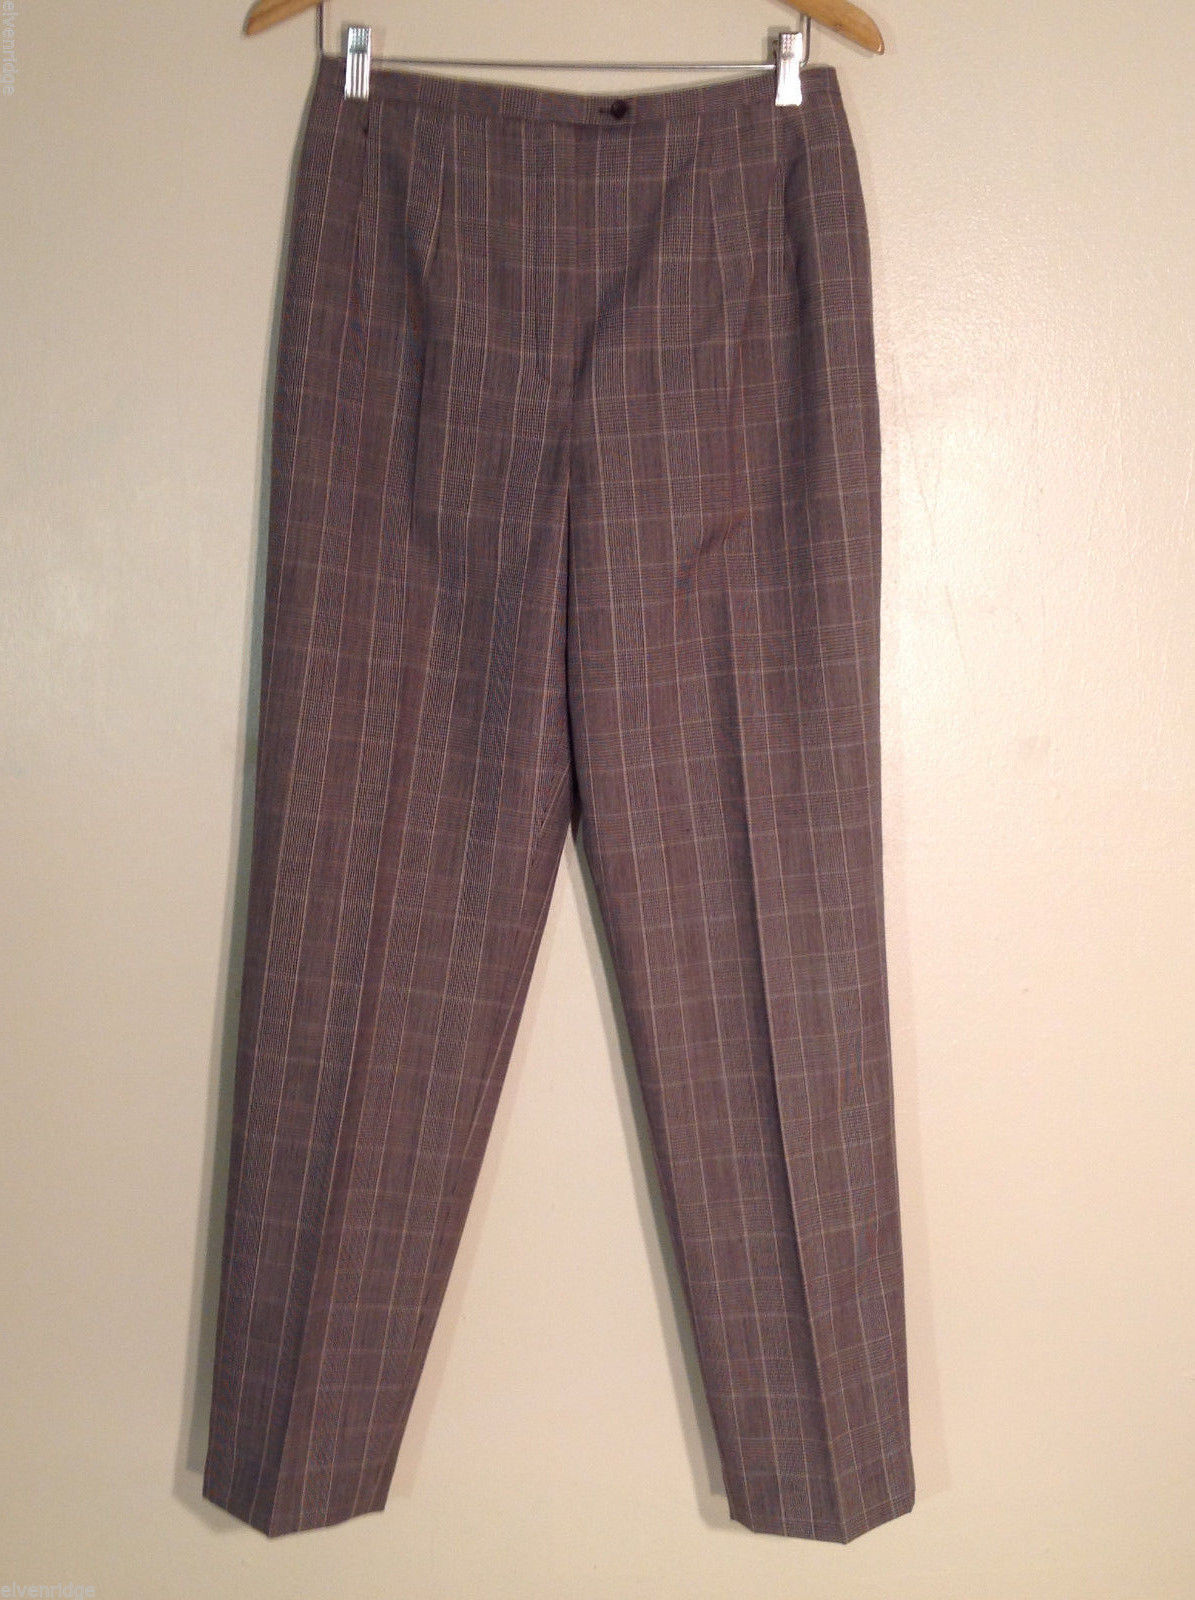 Andrea Viccaro Women's Size 10 Dress Pants Brown & Black Patterned Check Print